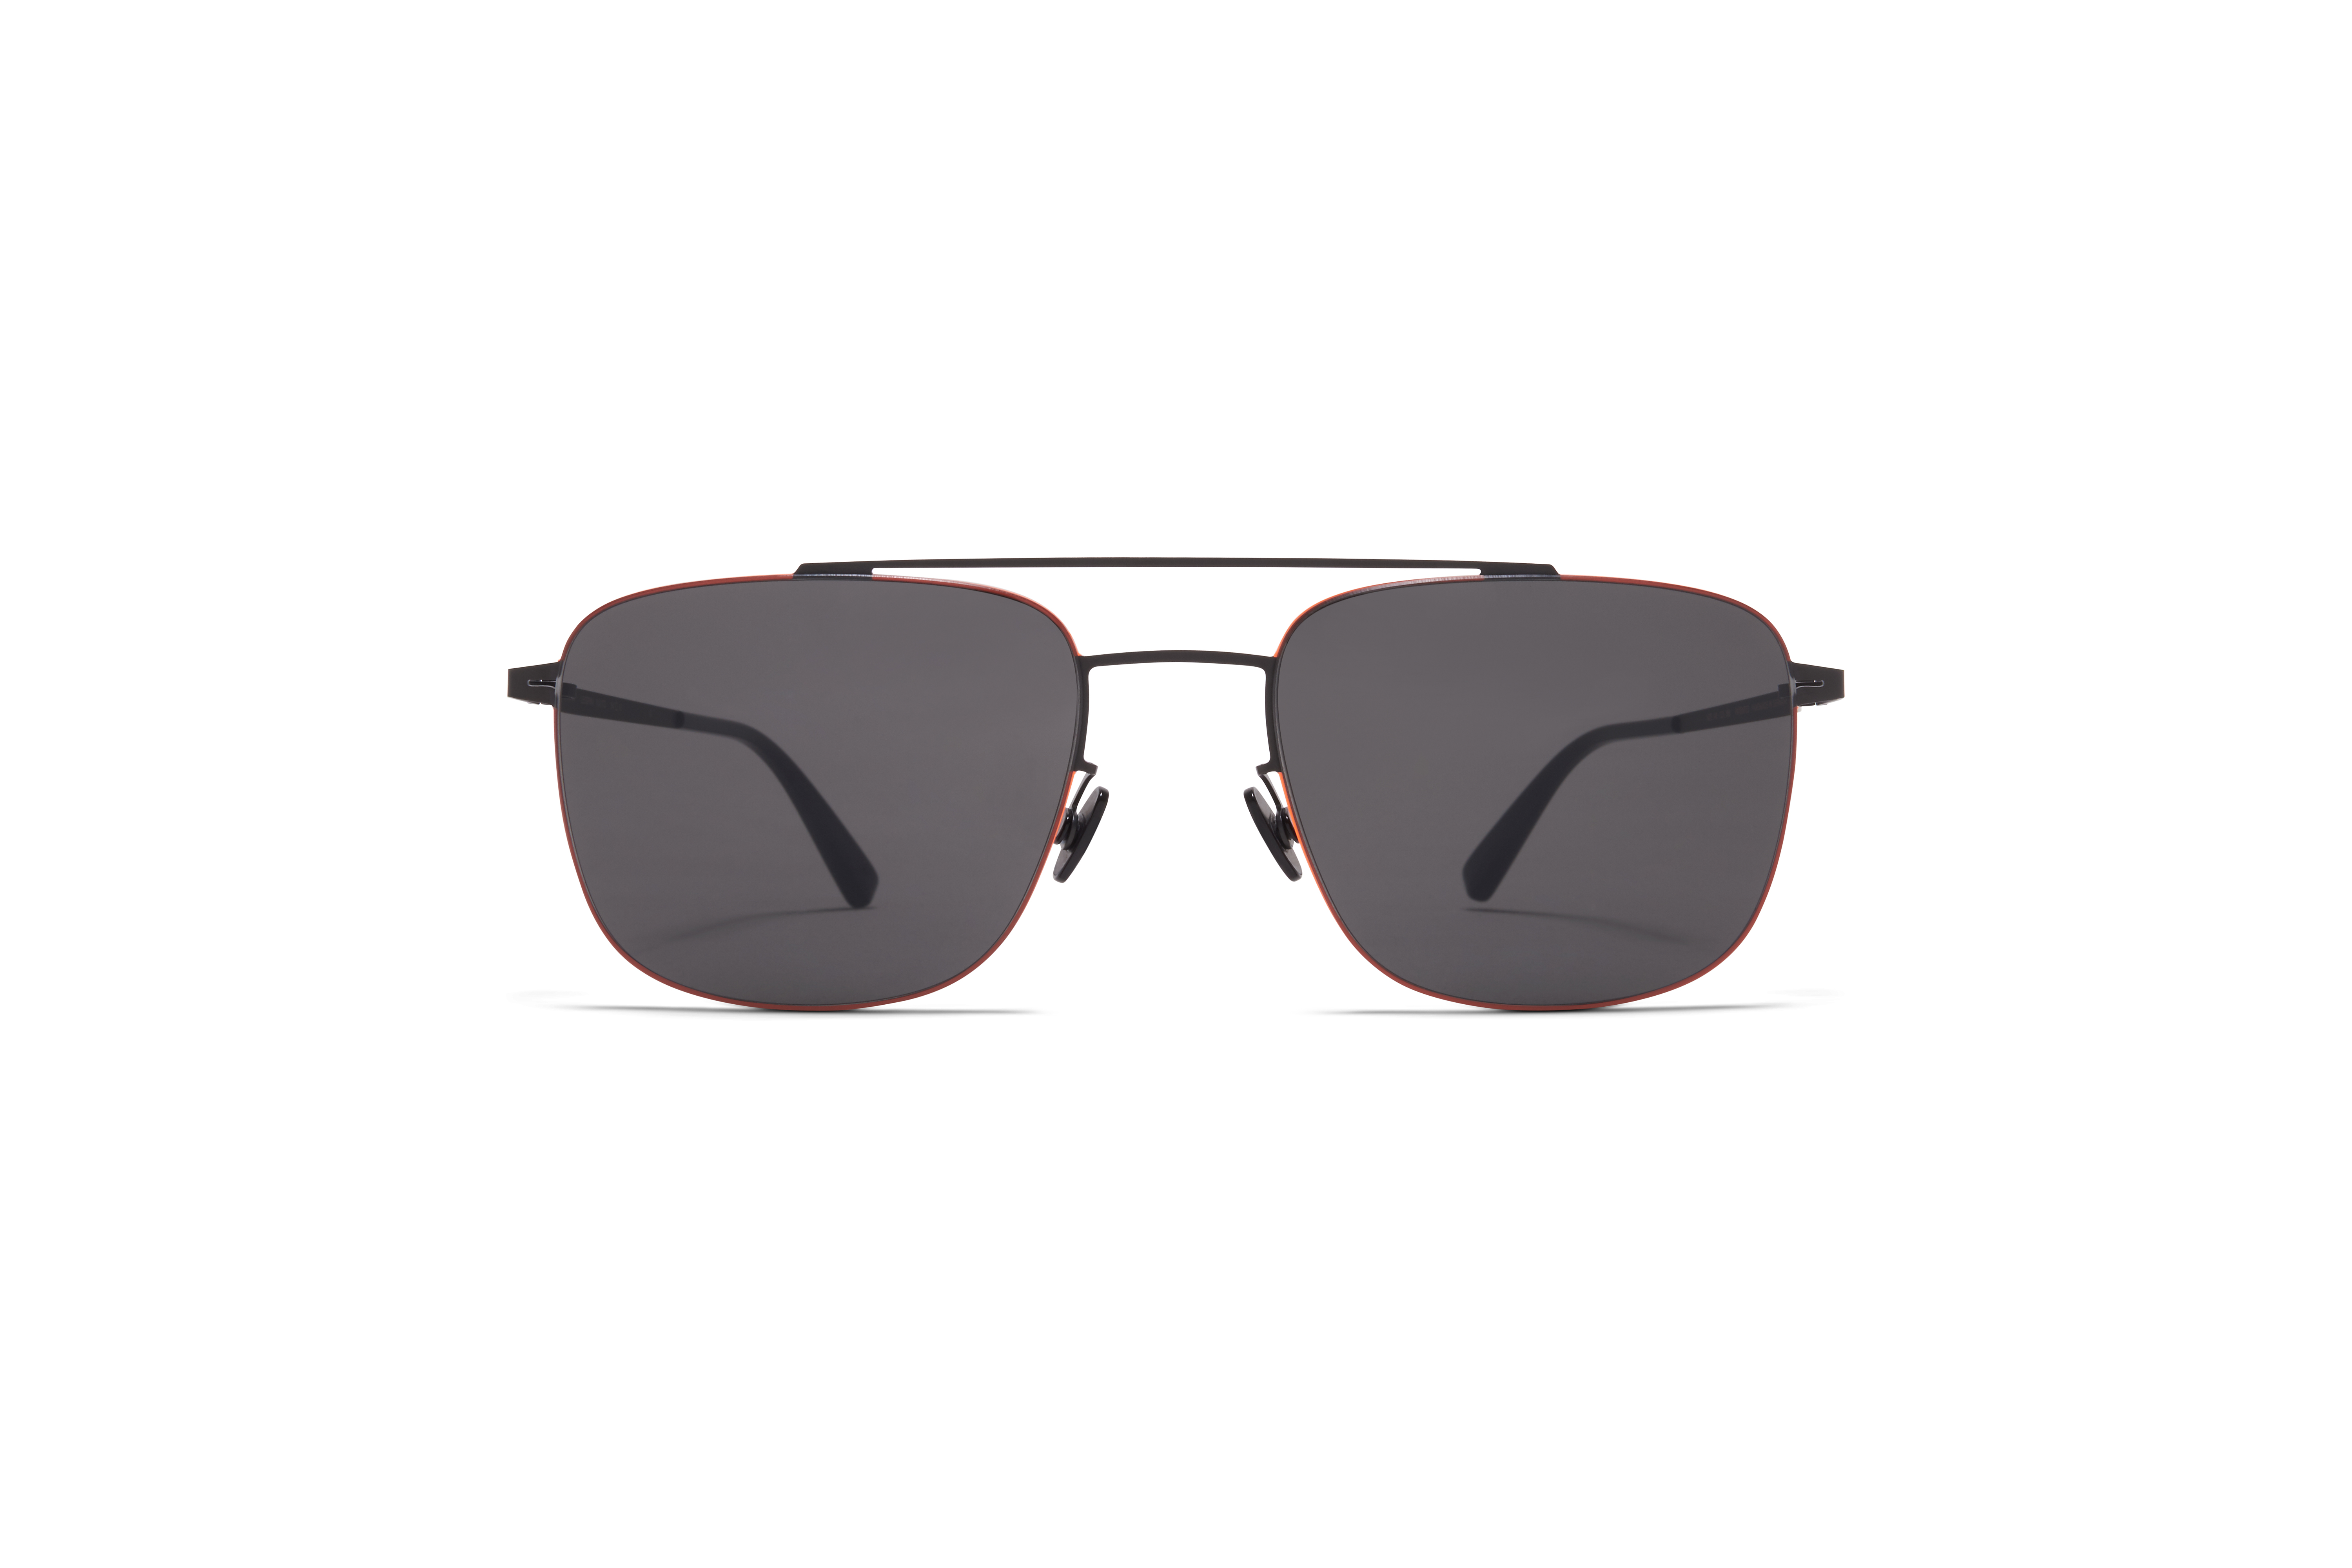 MYKITA Less Rim Sun Yuuto Black Neon Orange Dark Grey Solid